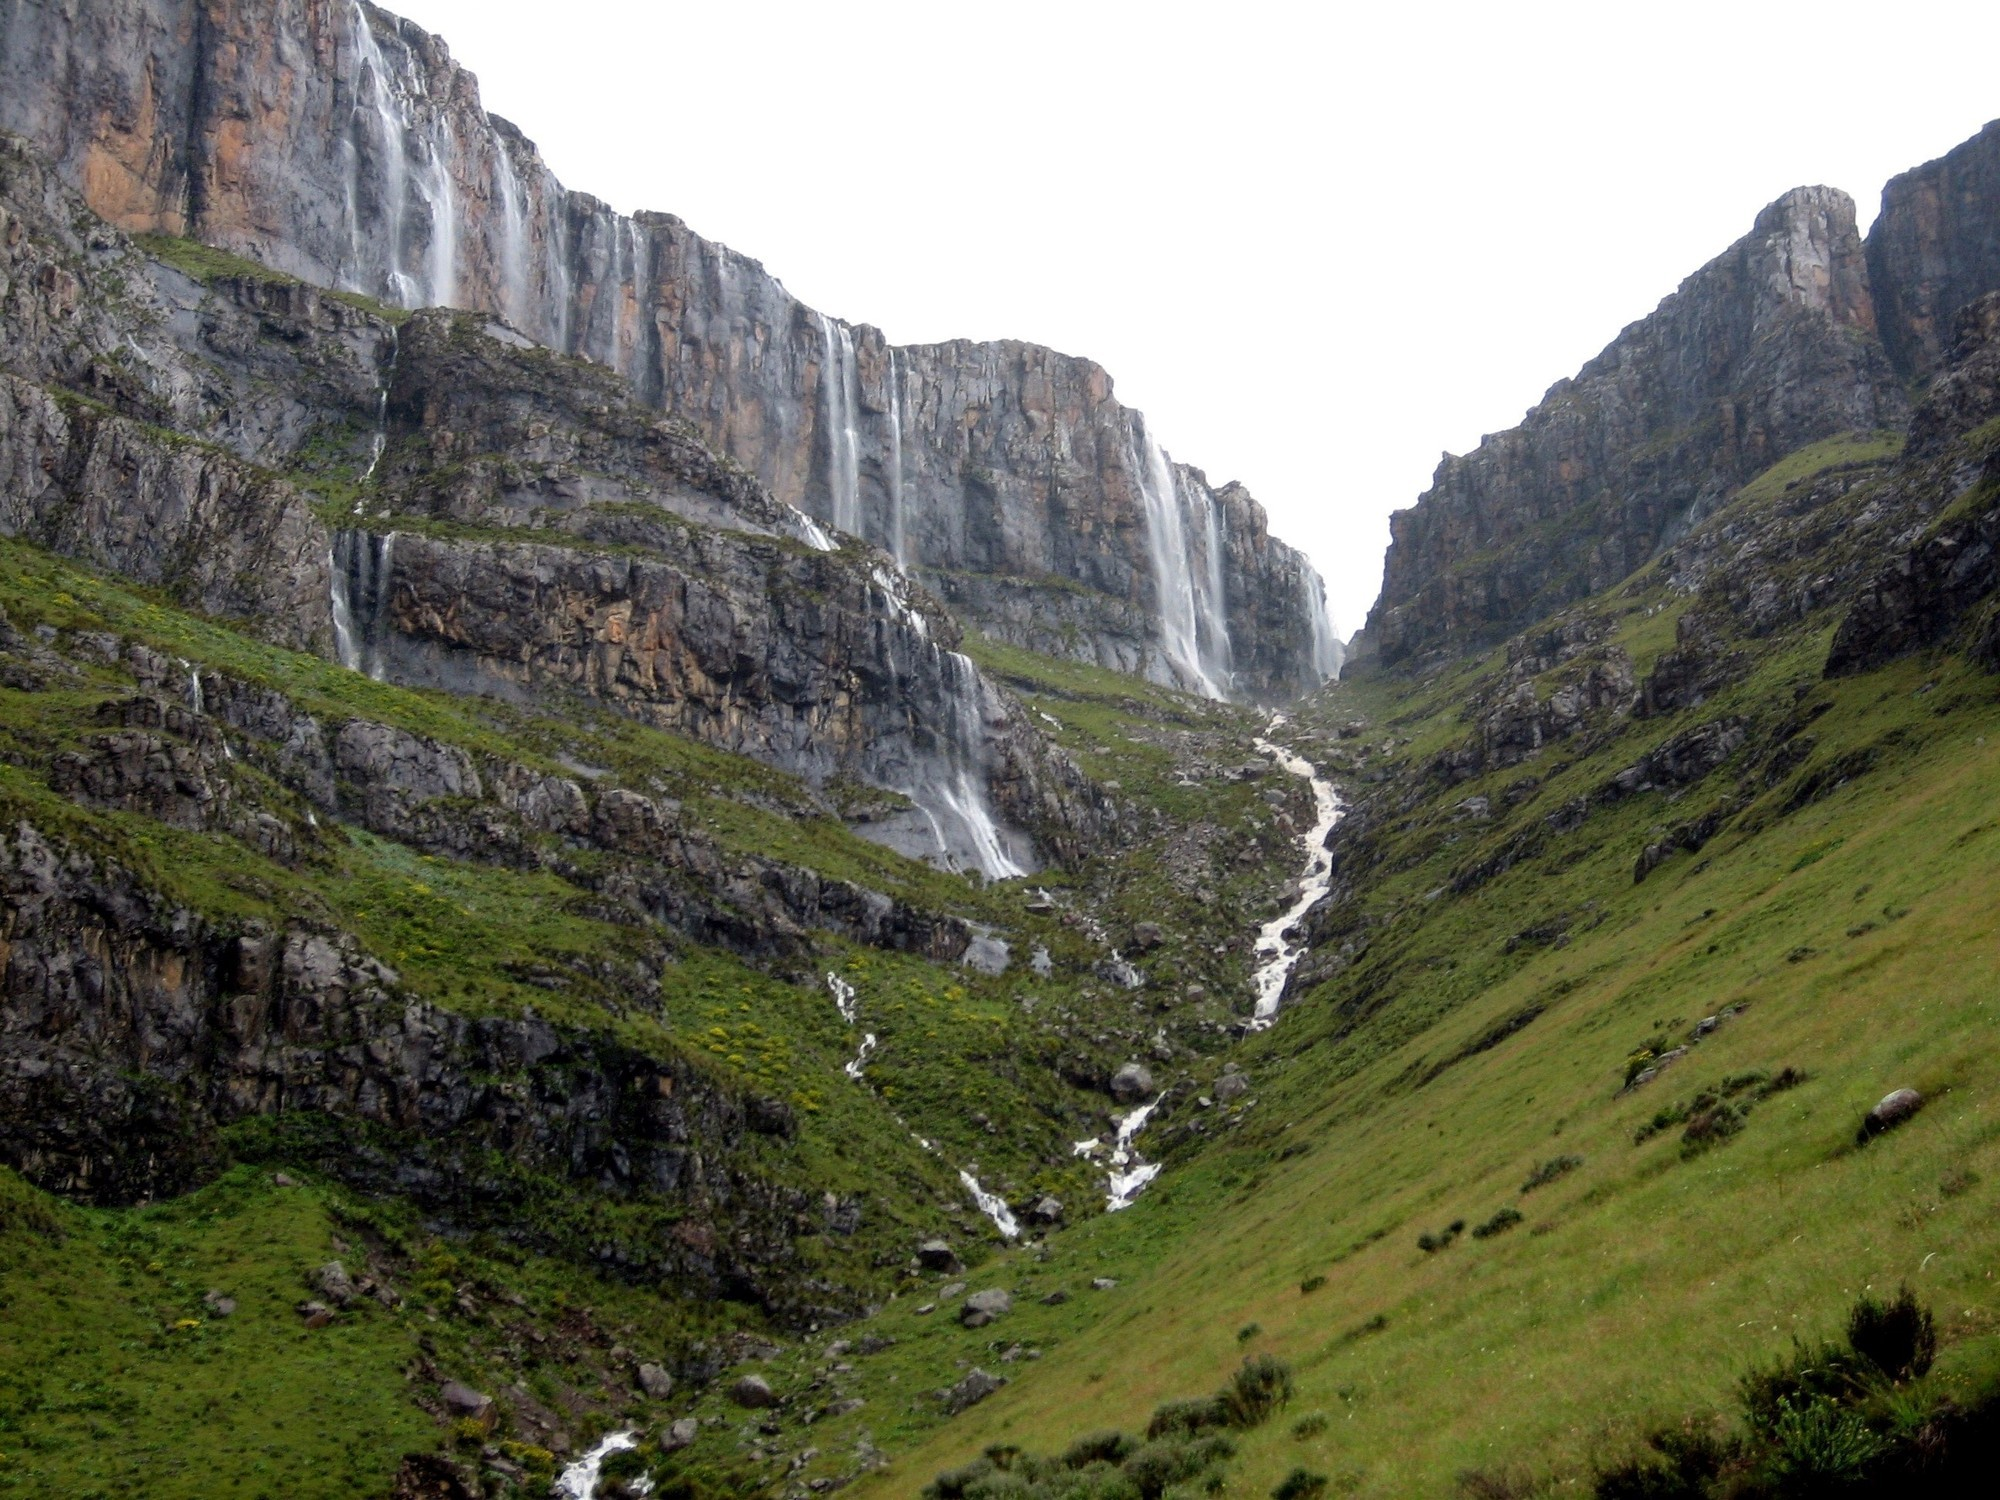 KwaZulu Natal's Drakensberg and Midlands